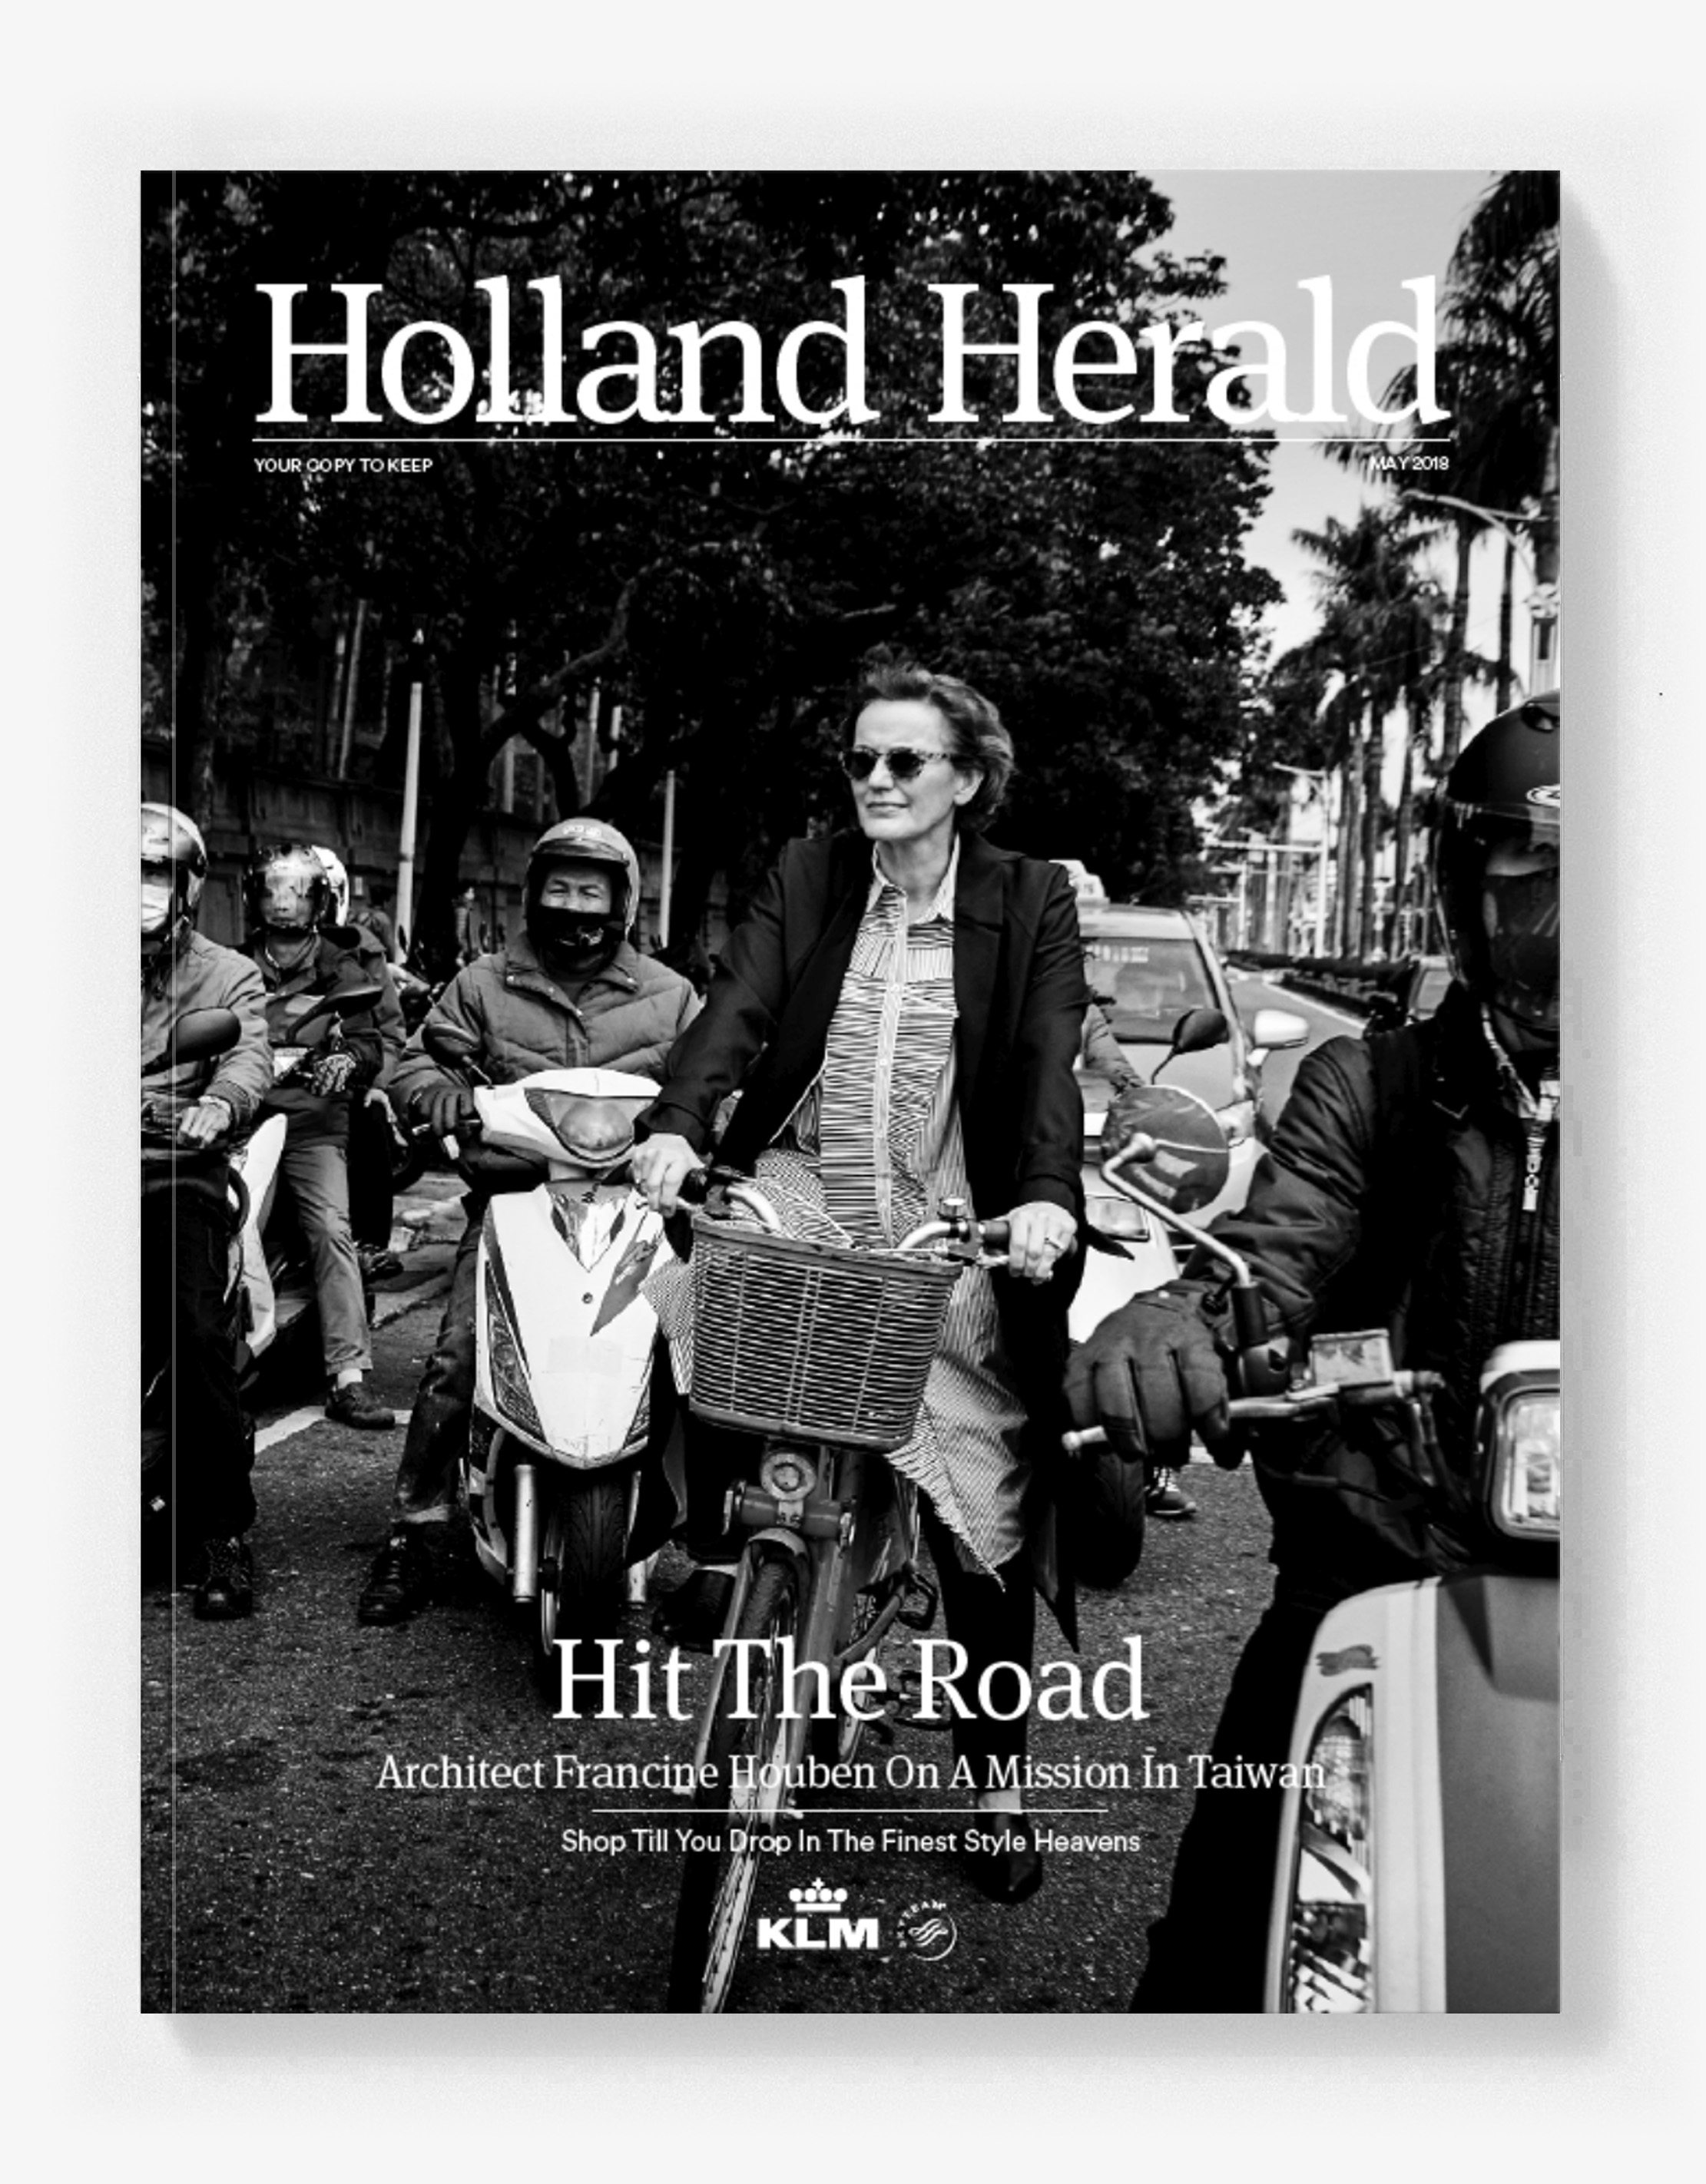 Holland Herald, May 2018 text